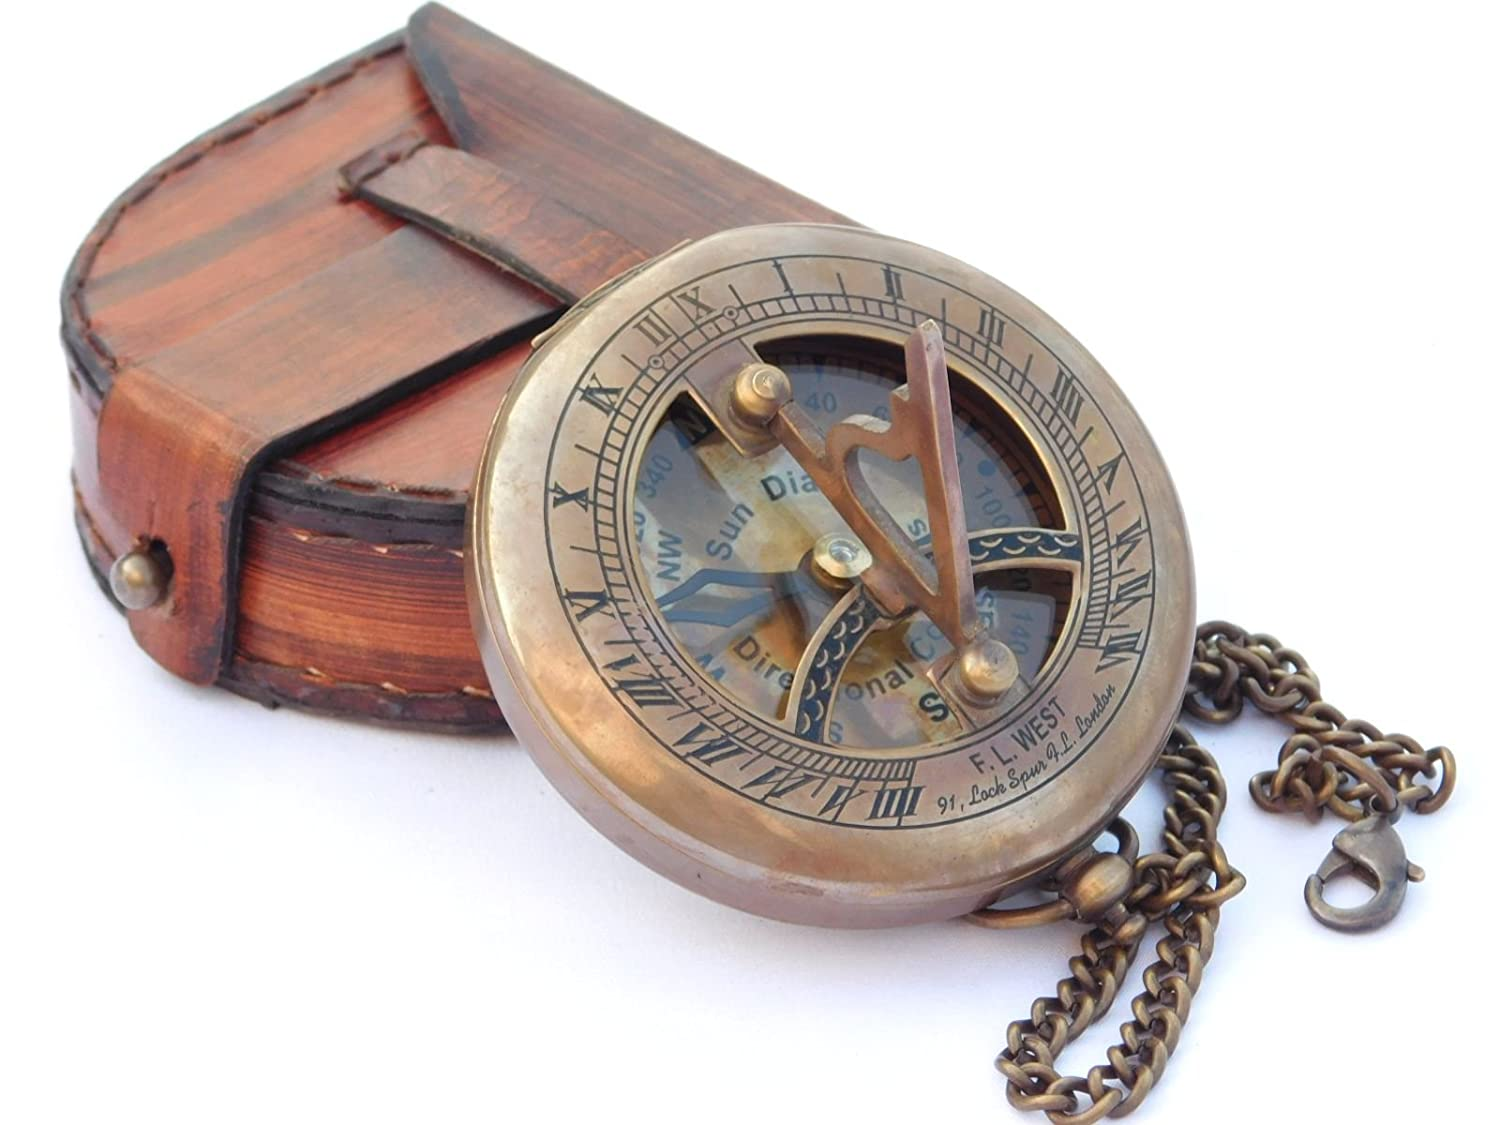 Men's Steampunk Goggles, Guns, Gadgets & Watches NEOVIVID Brass Sundial Compass with Leather Case and Chain - Push Open Compass - Steampunk Accessory - Antiquated Finish - Beautiful Handmade Gift -Sundial Clock $29.90 AT vintagedancer.com